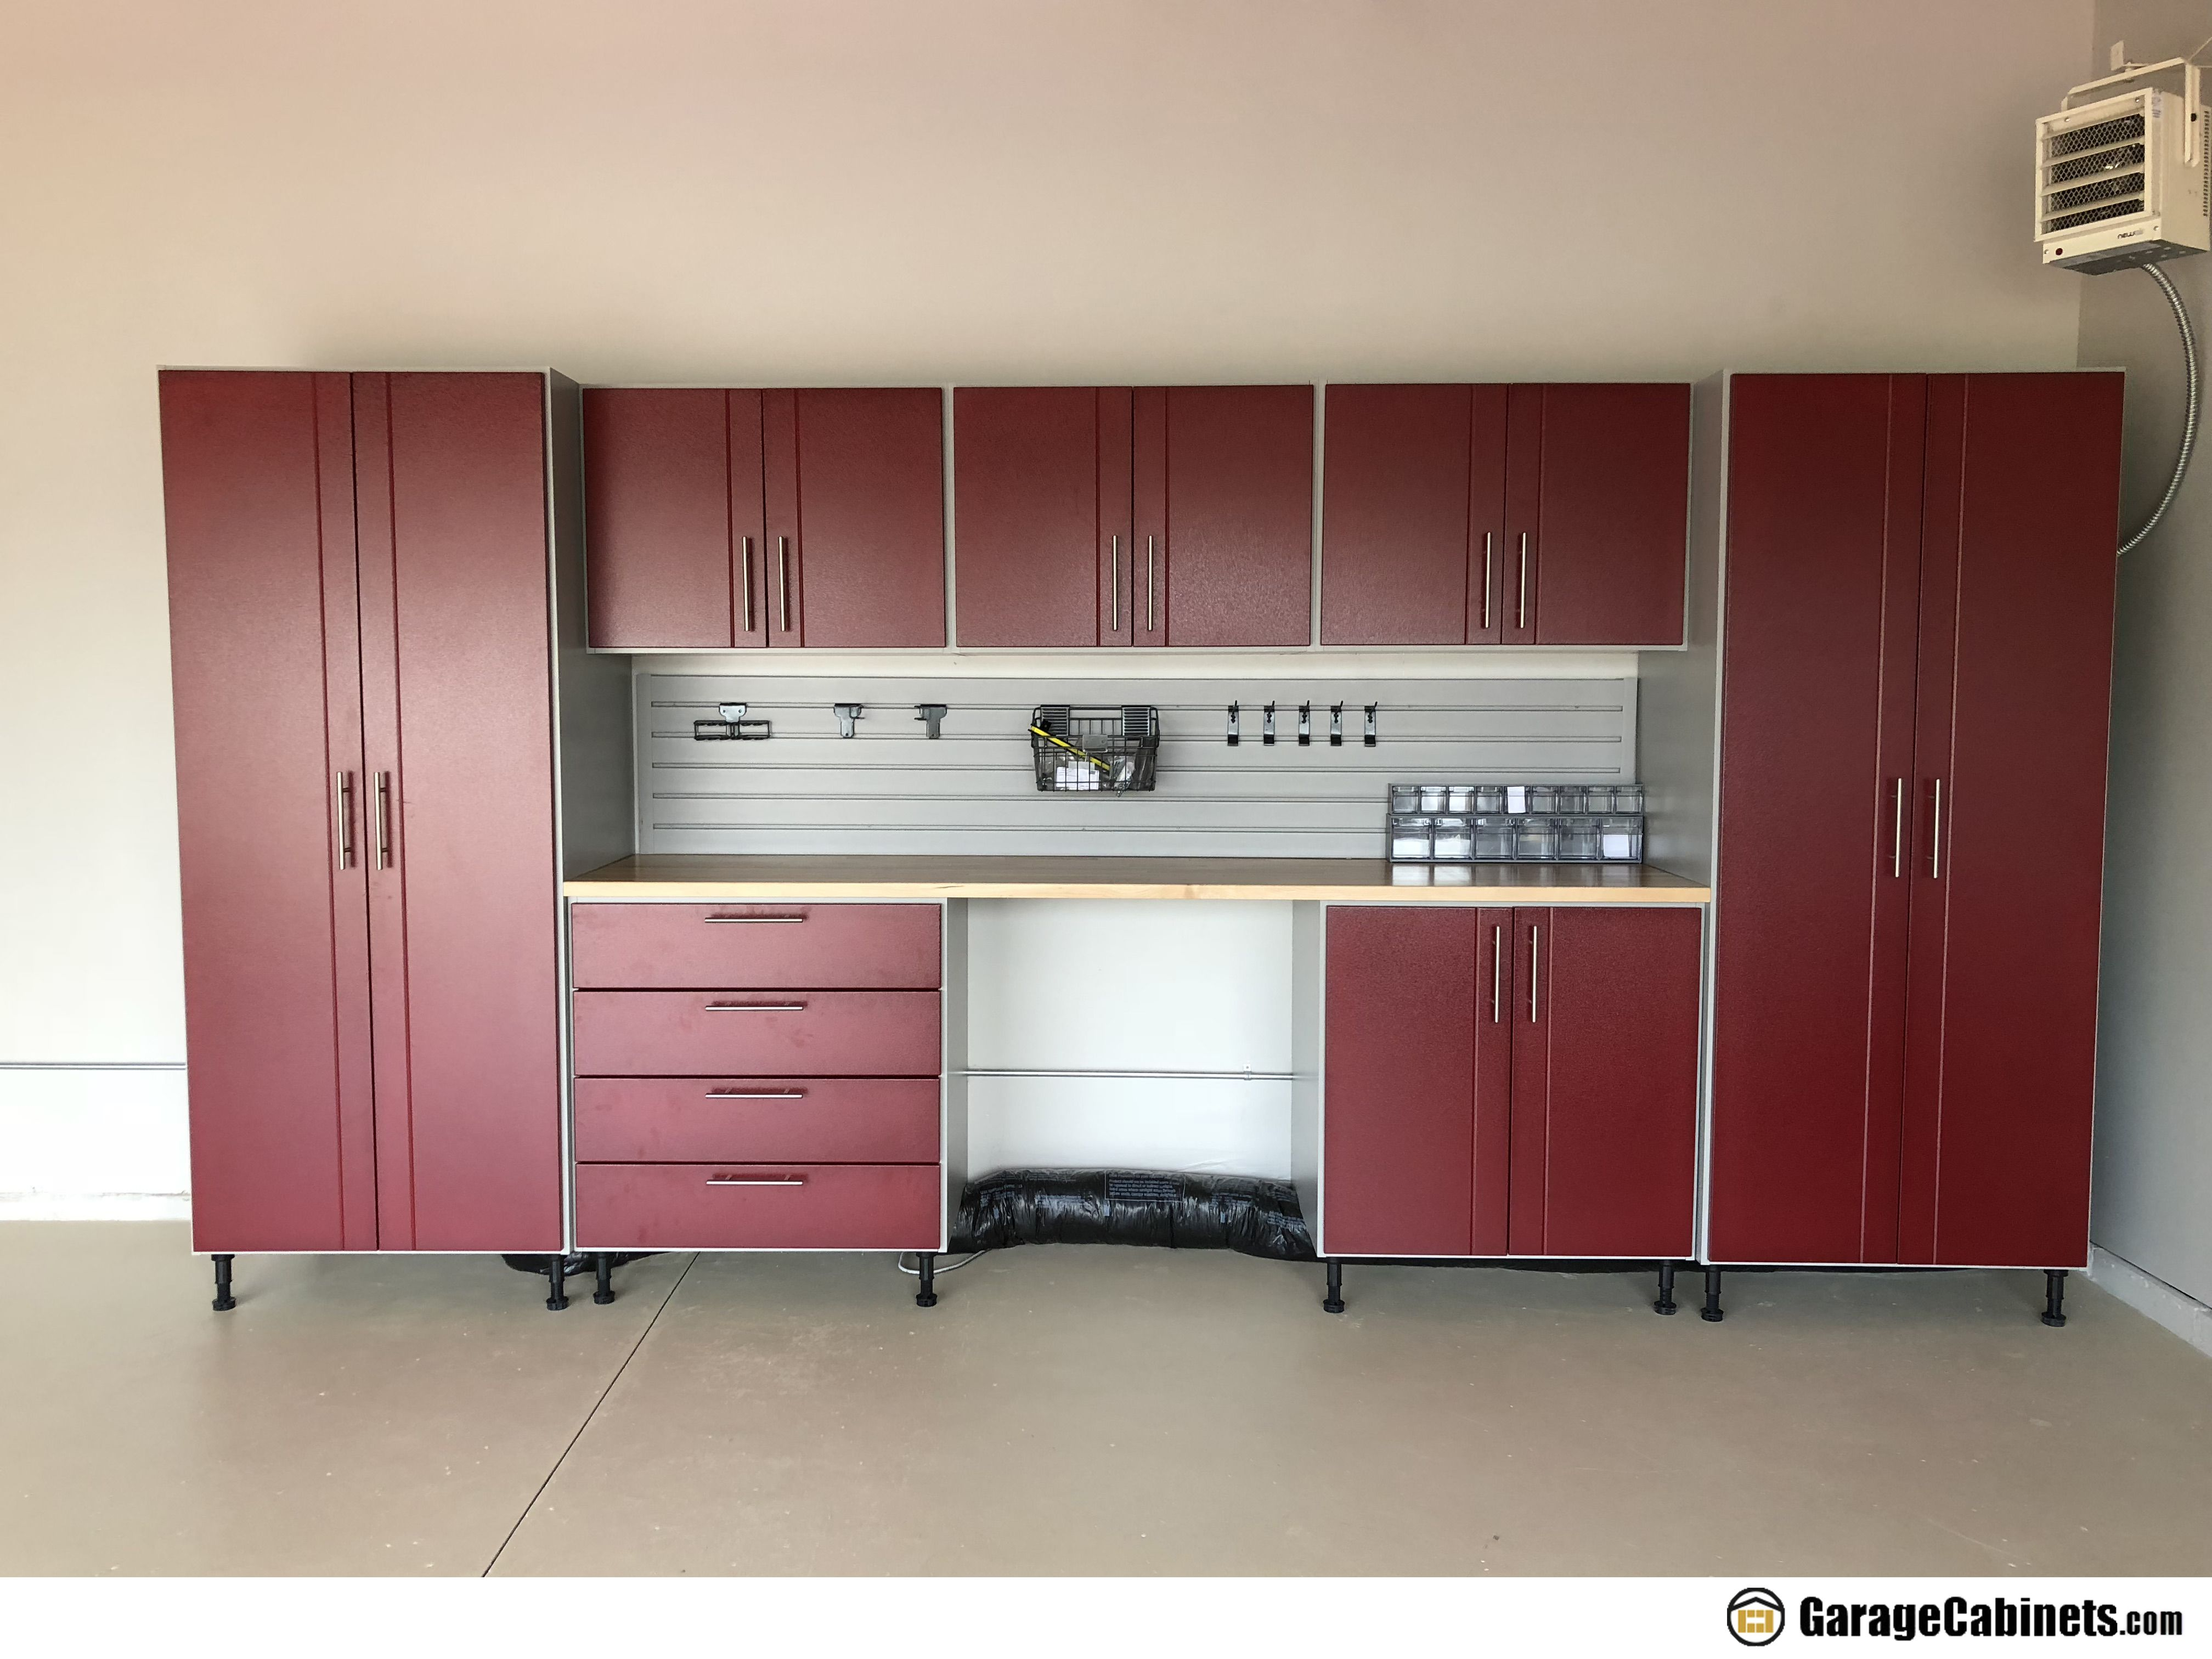 Garagecabinets Com Manufactures The Finest Storage Cabinets For